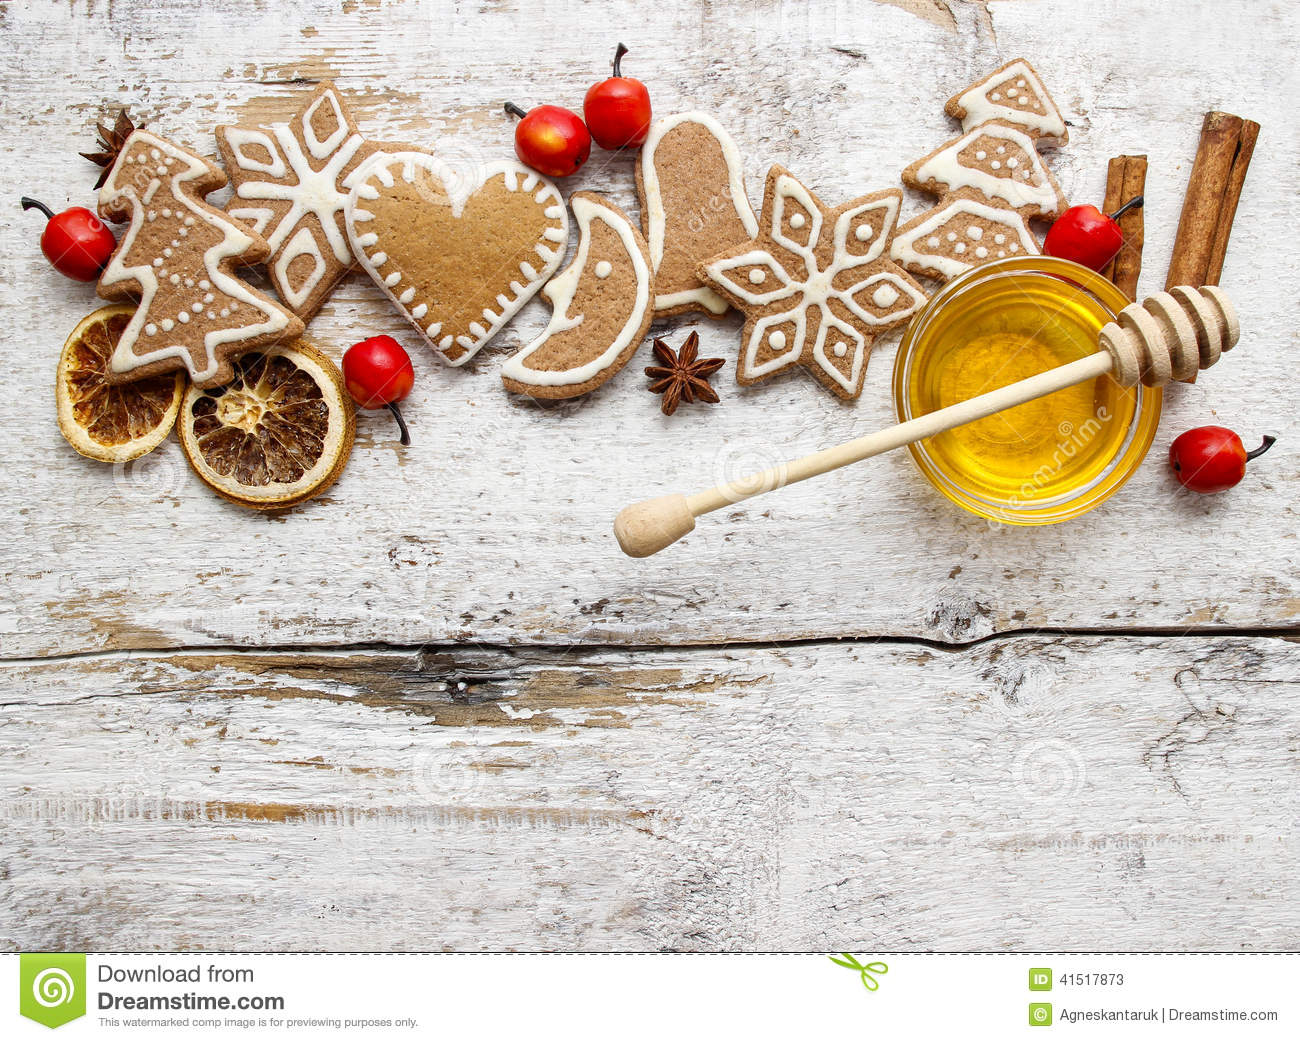 Gingerbread Christmas Cookies And Bowl Of Honey On Wooden